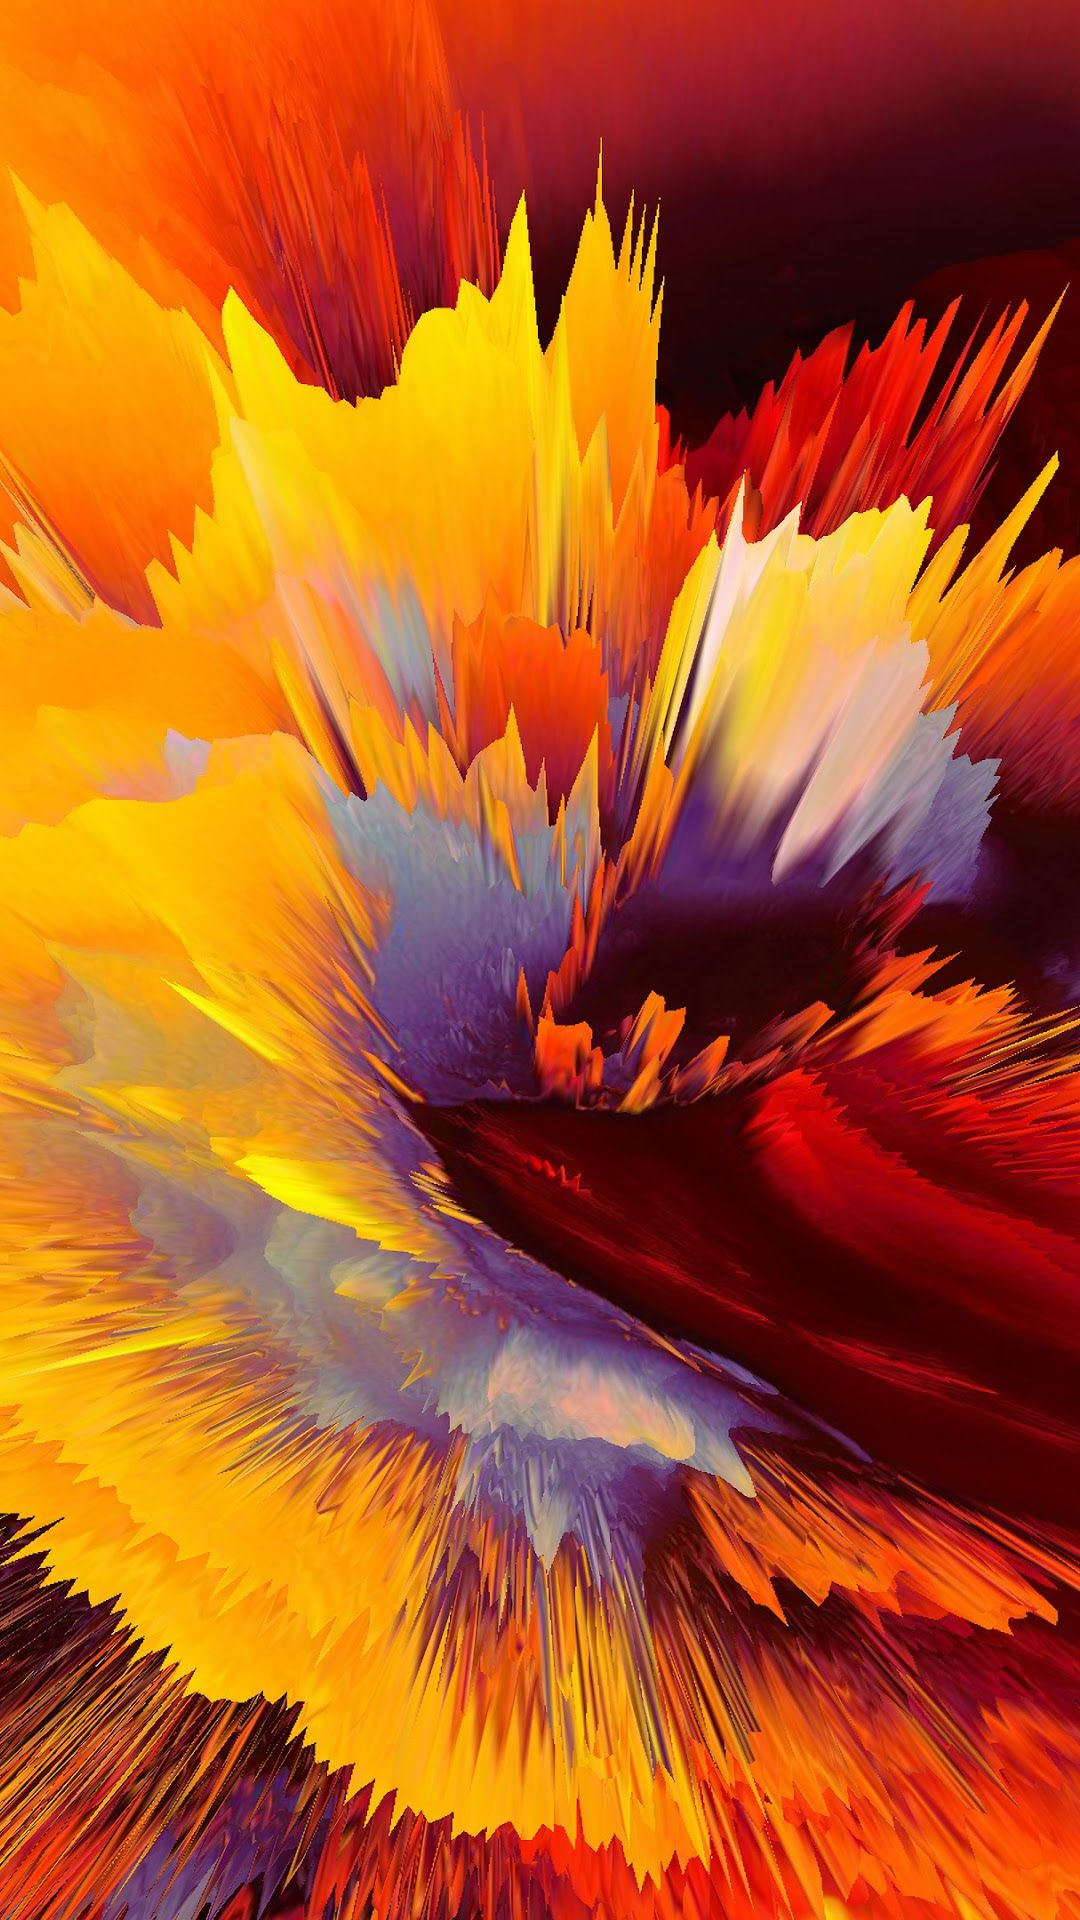 Abstract 4k Image In 2020 Abstract Abstract Iphone Wallpaper Backgrounds Phone Wallpapers